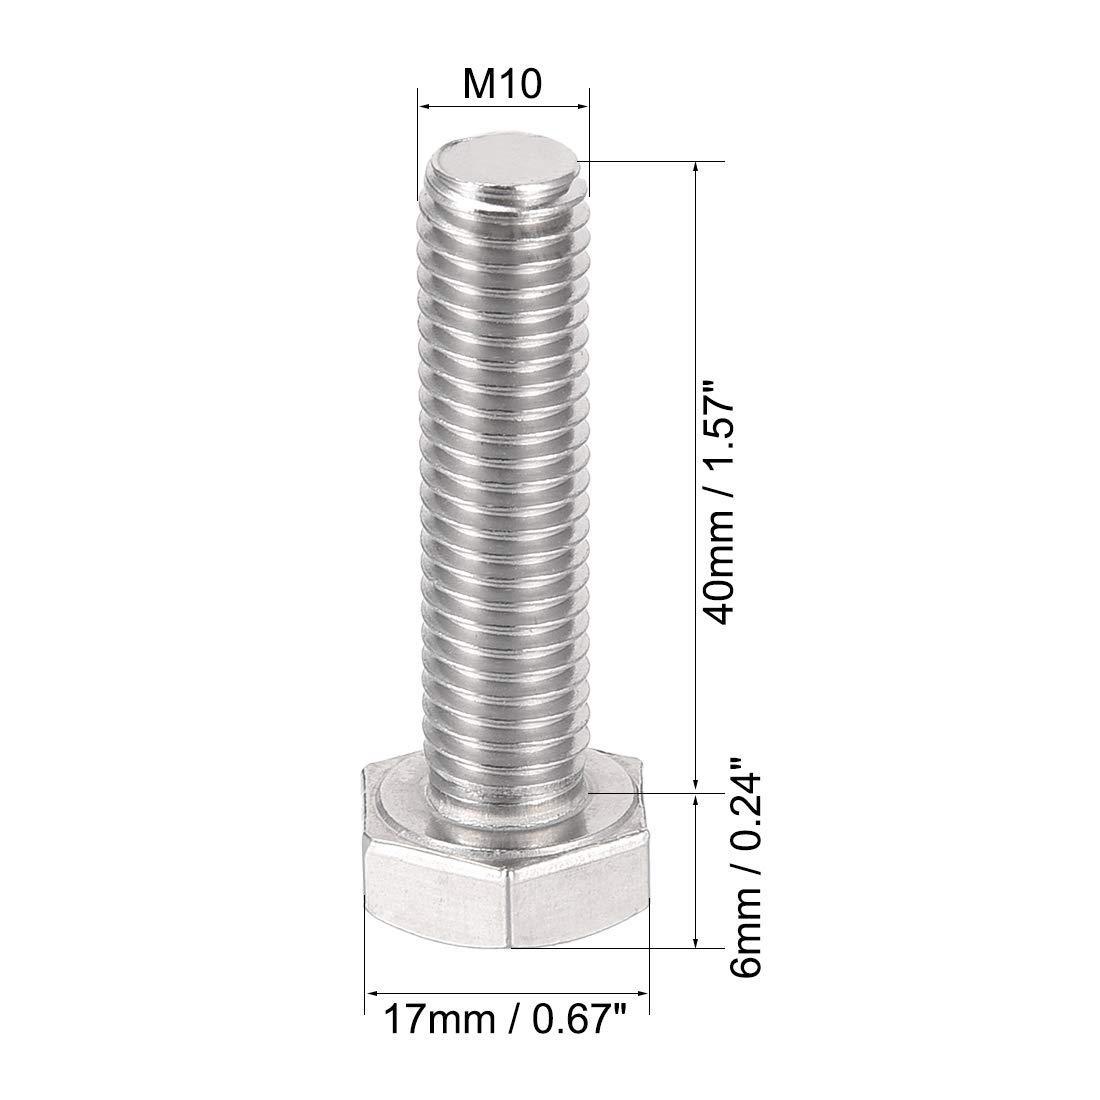 uxcell M8 Left Hand Hex Head Bolt M8-1.25 x 40mm UNC A2-70 Stainless Steel Reverse Threaded Hex Tap Screw Bolts 2pcs 304